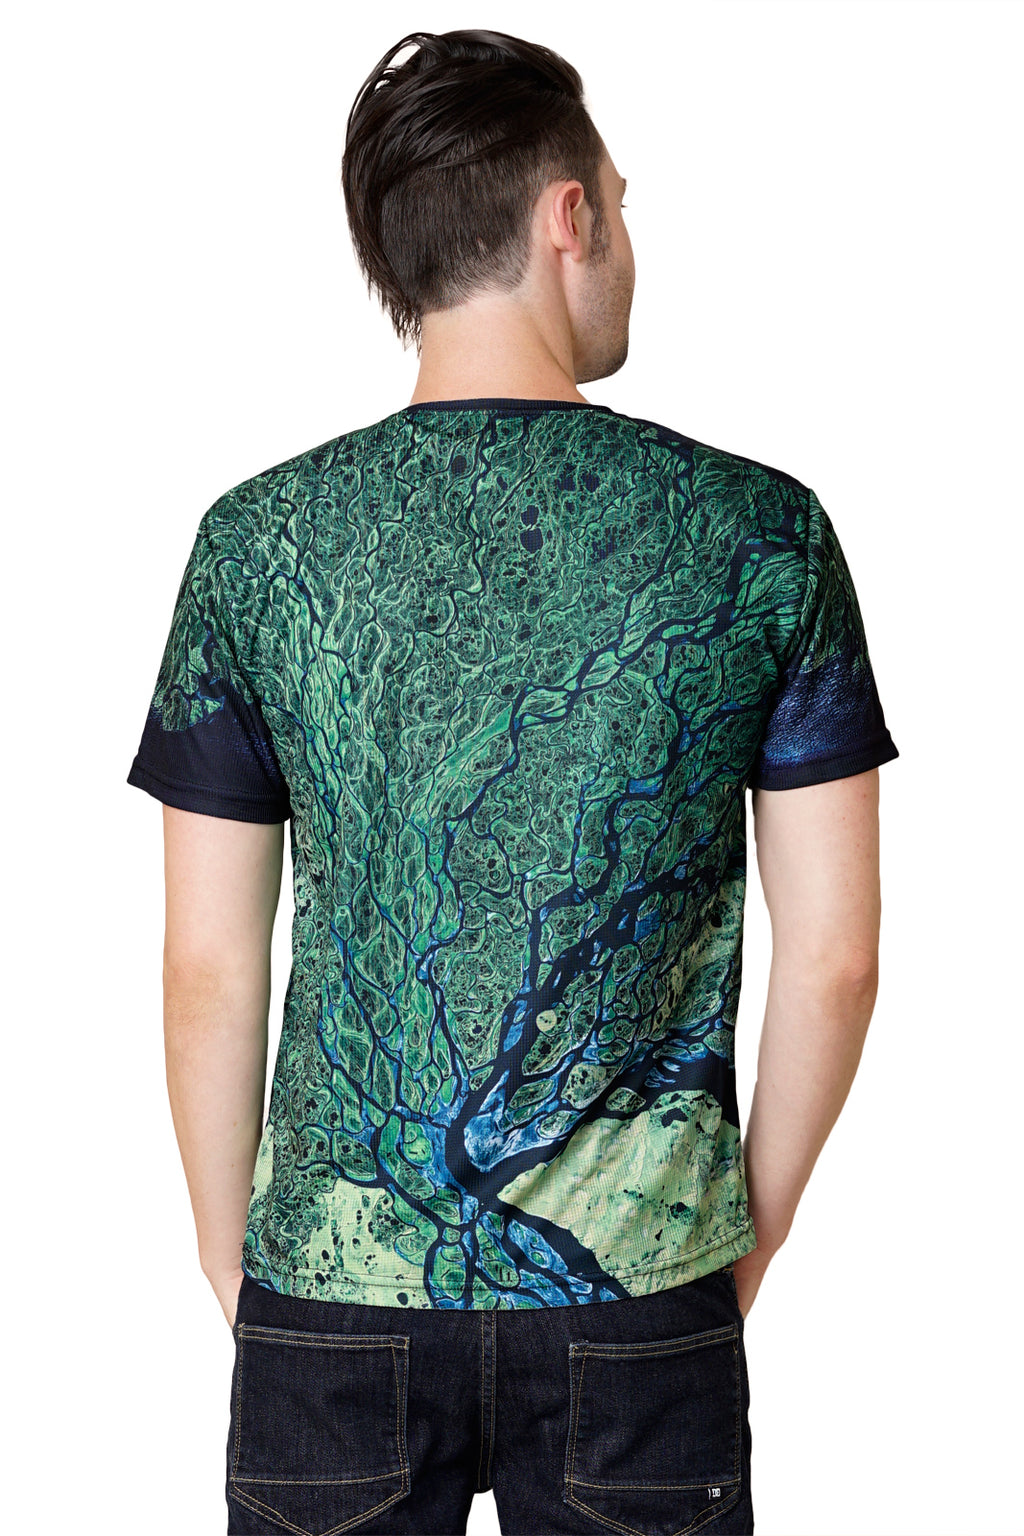 Mens Short Sleeve T-shirt-Nature Performance Clothing-Satellite Image of Earth-Lena Delta-Back View